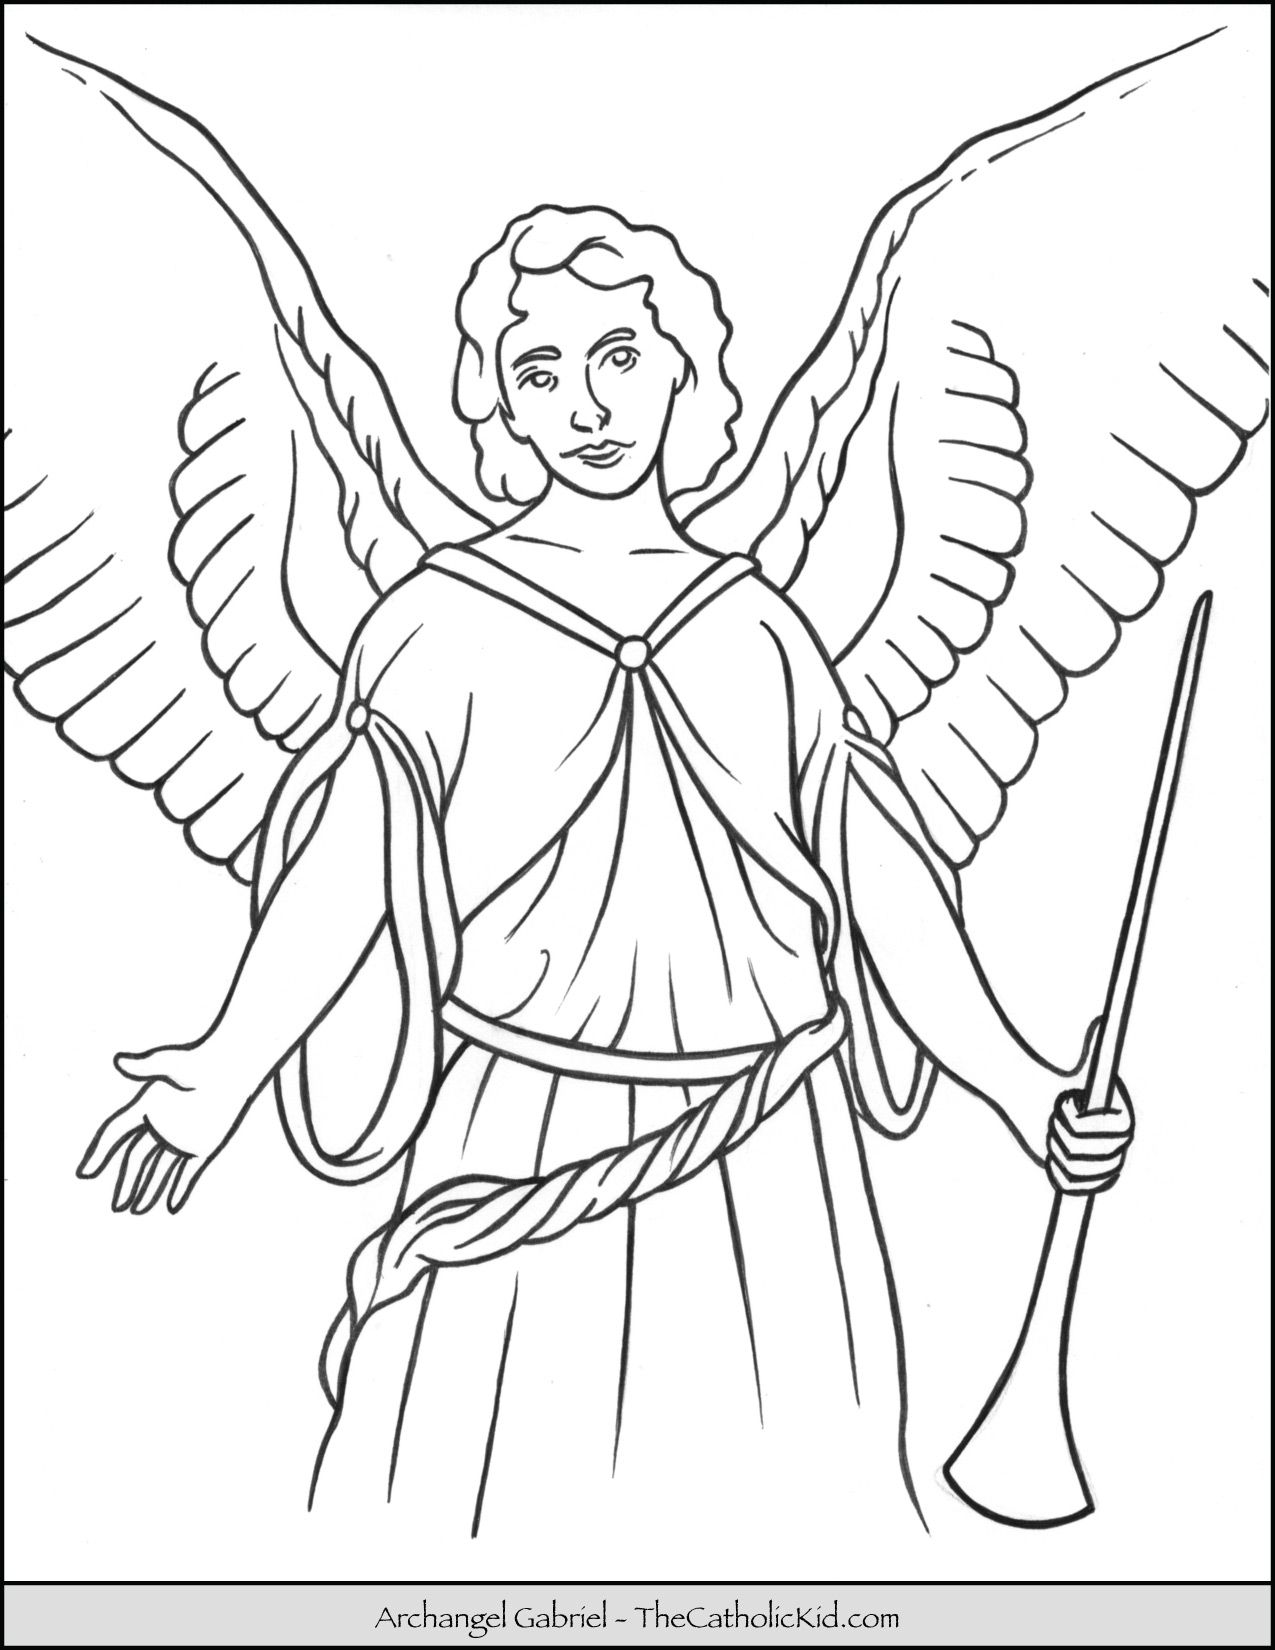 Archangel Gabriel Coloring Page Feastday September 29 Patron Of Messengers Telecommunicati Angel Coloring Pages Monster Coloring Pages Cartoon Coloring Pages